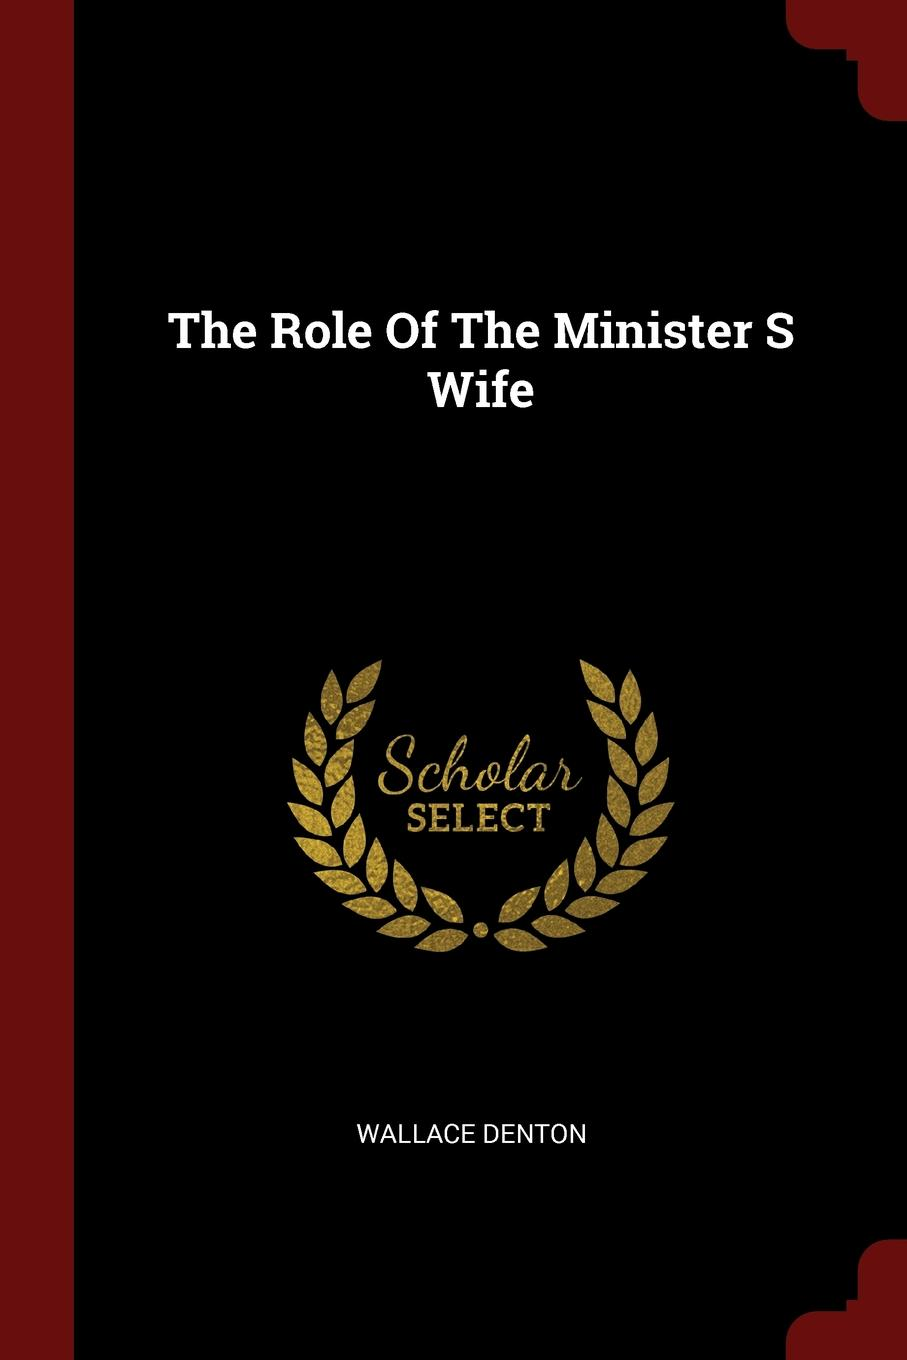 Wallace Denton The Role Of The Minister S Wife